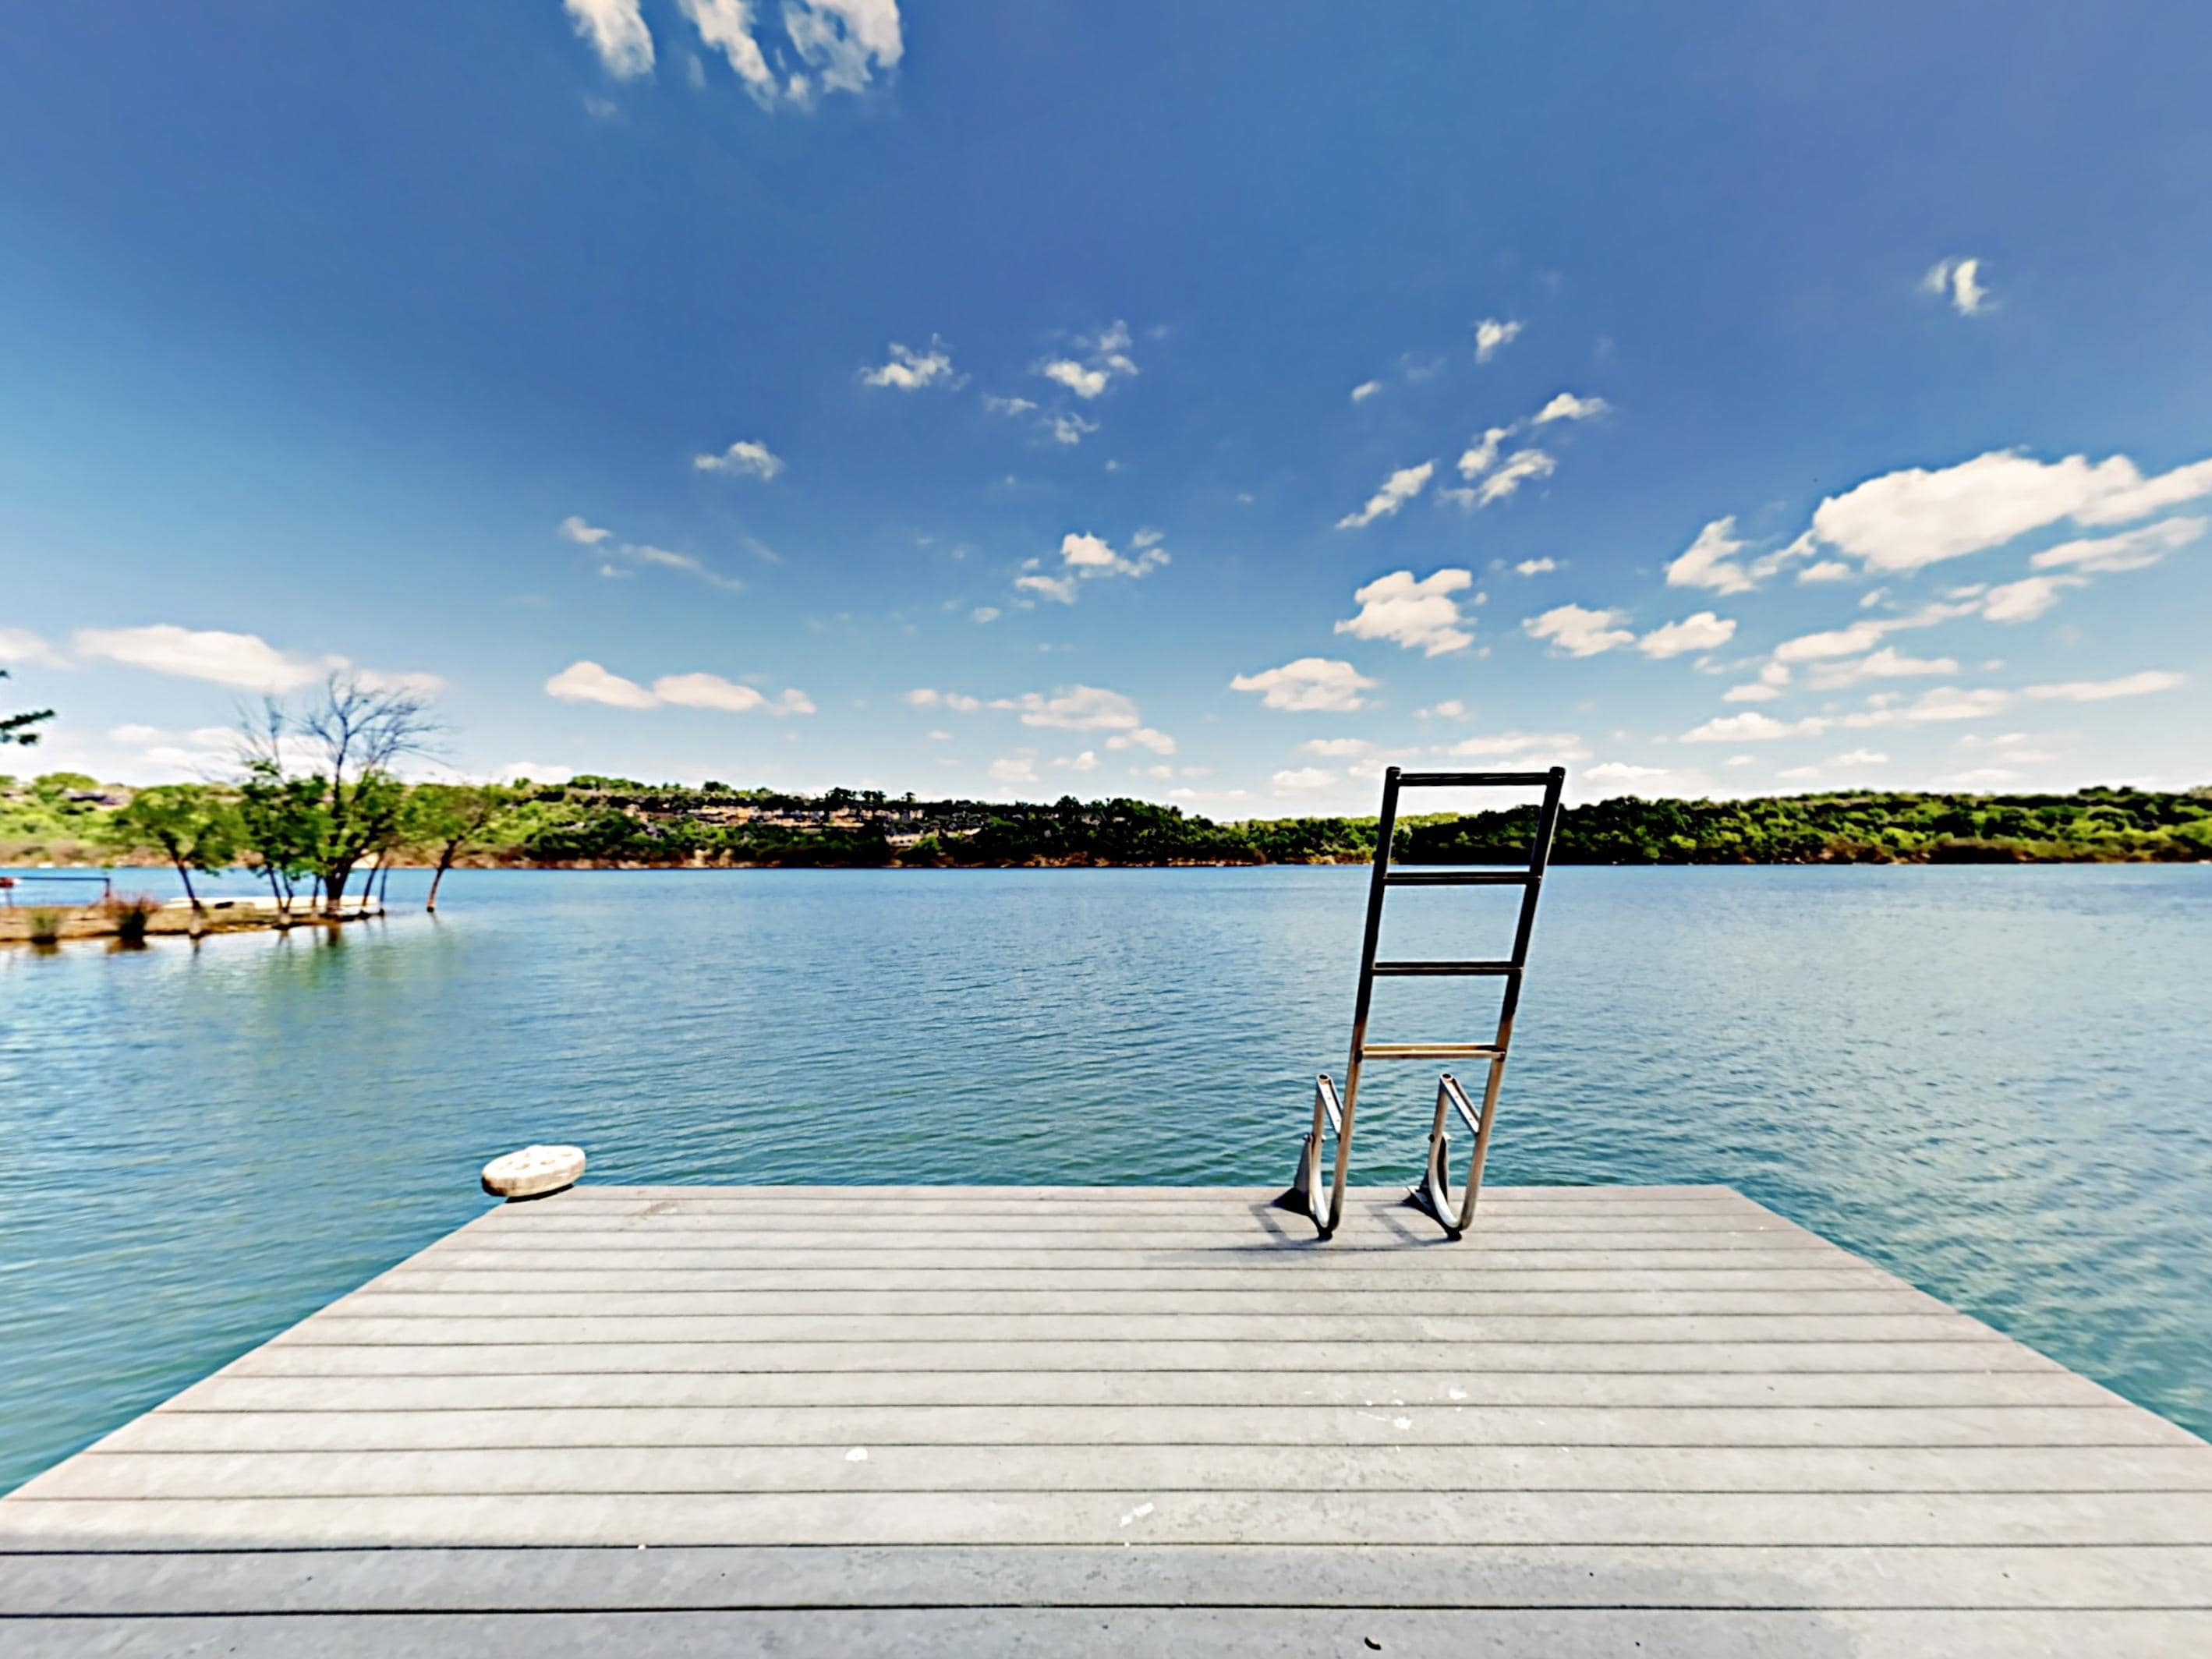 Property Image 2 - Serene Lakefront Haven on Peaceful Cove with Boat Dock